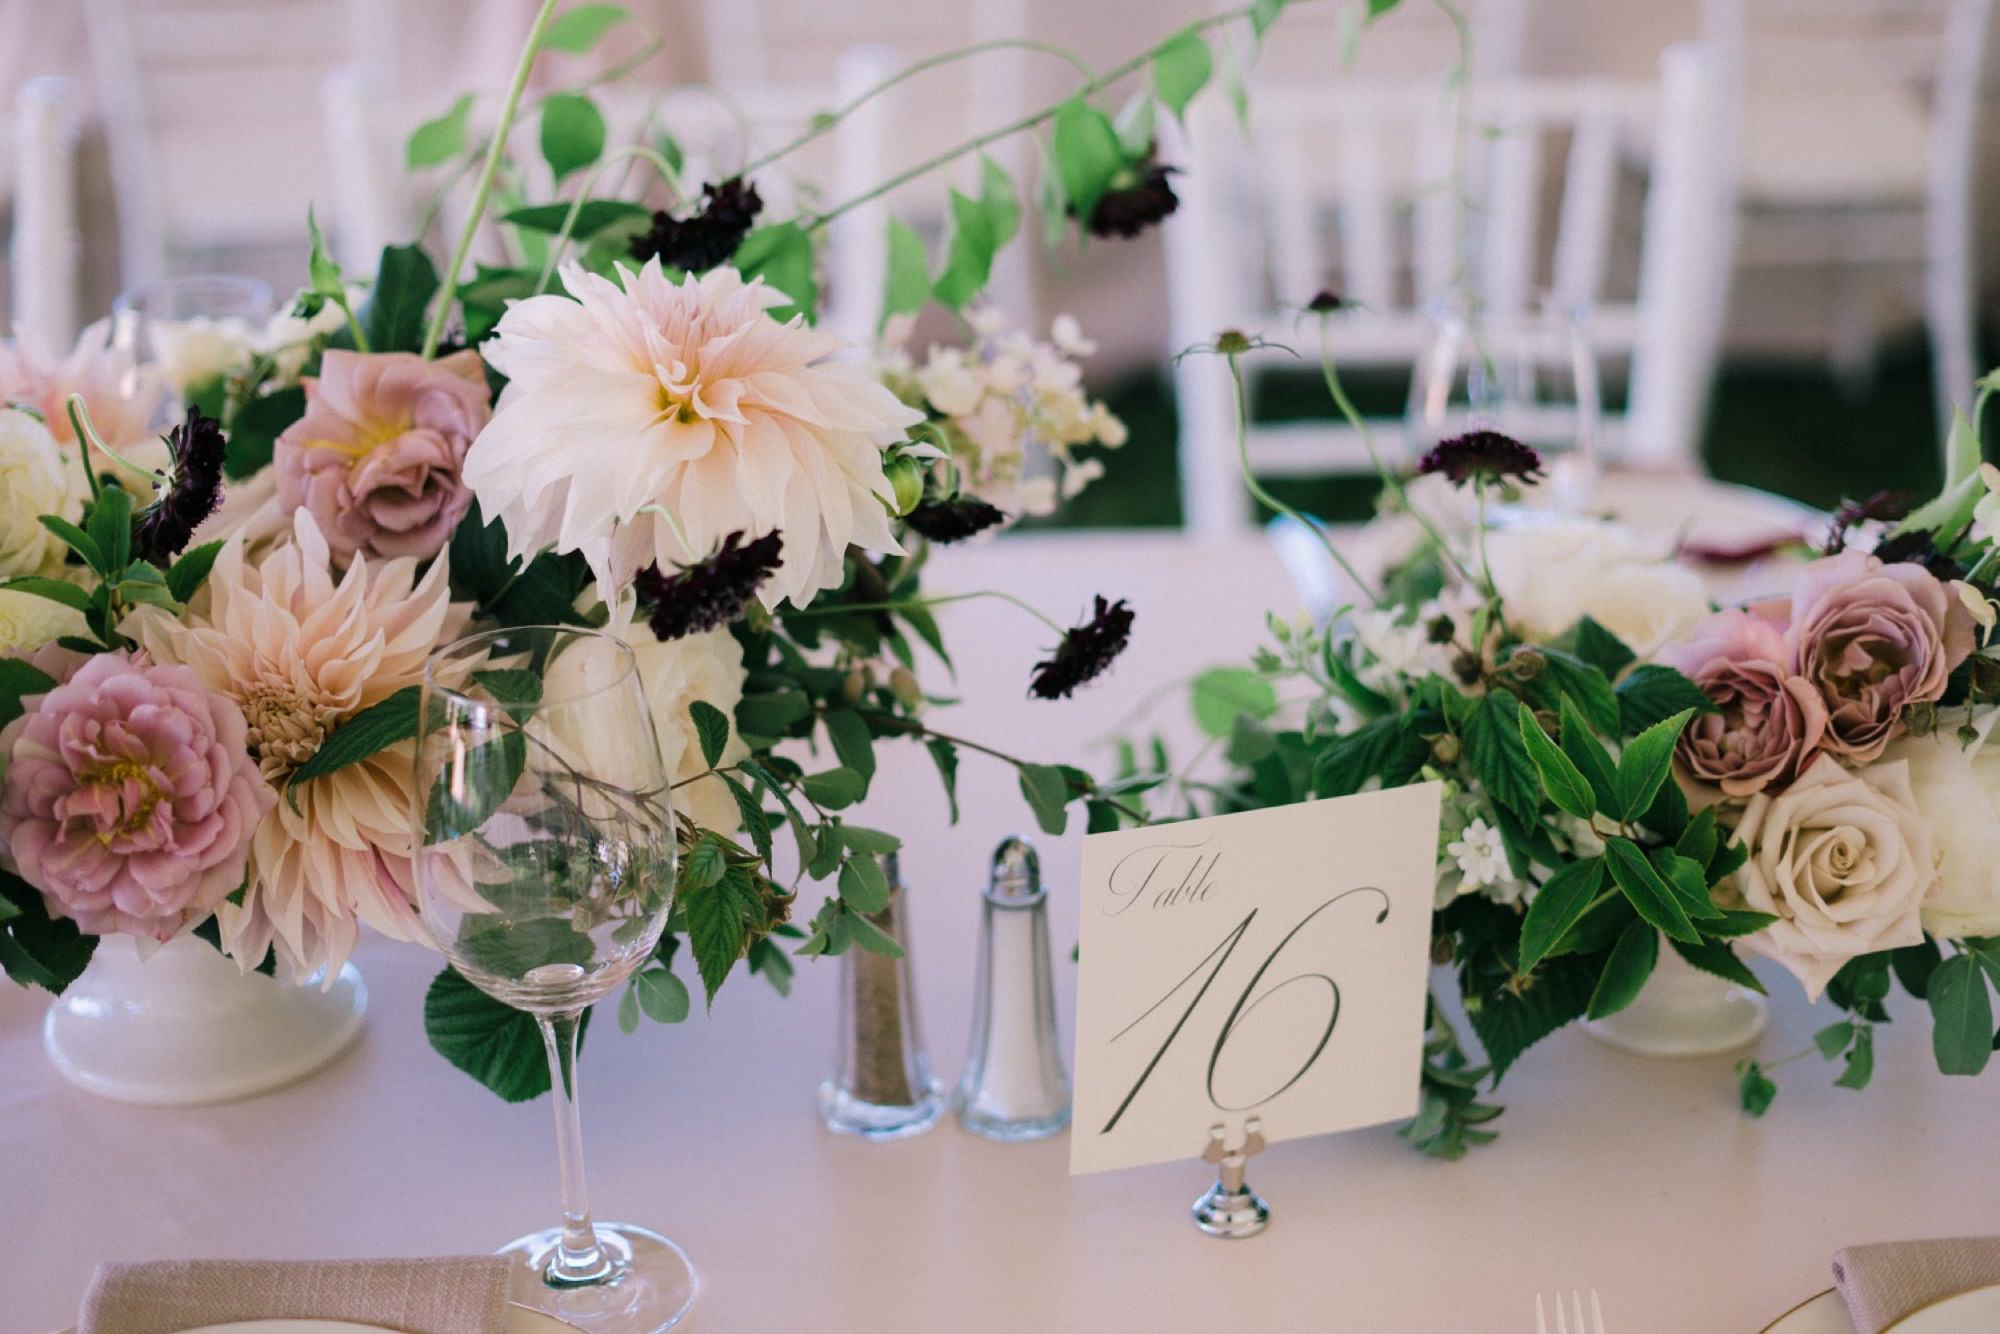 A lush and romantic wedding reception from Seattle Florist Botanique